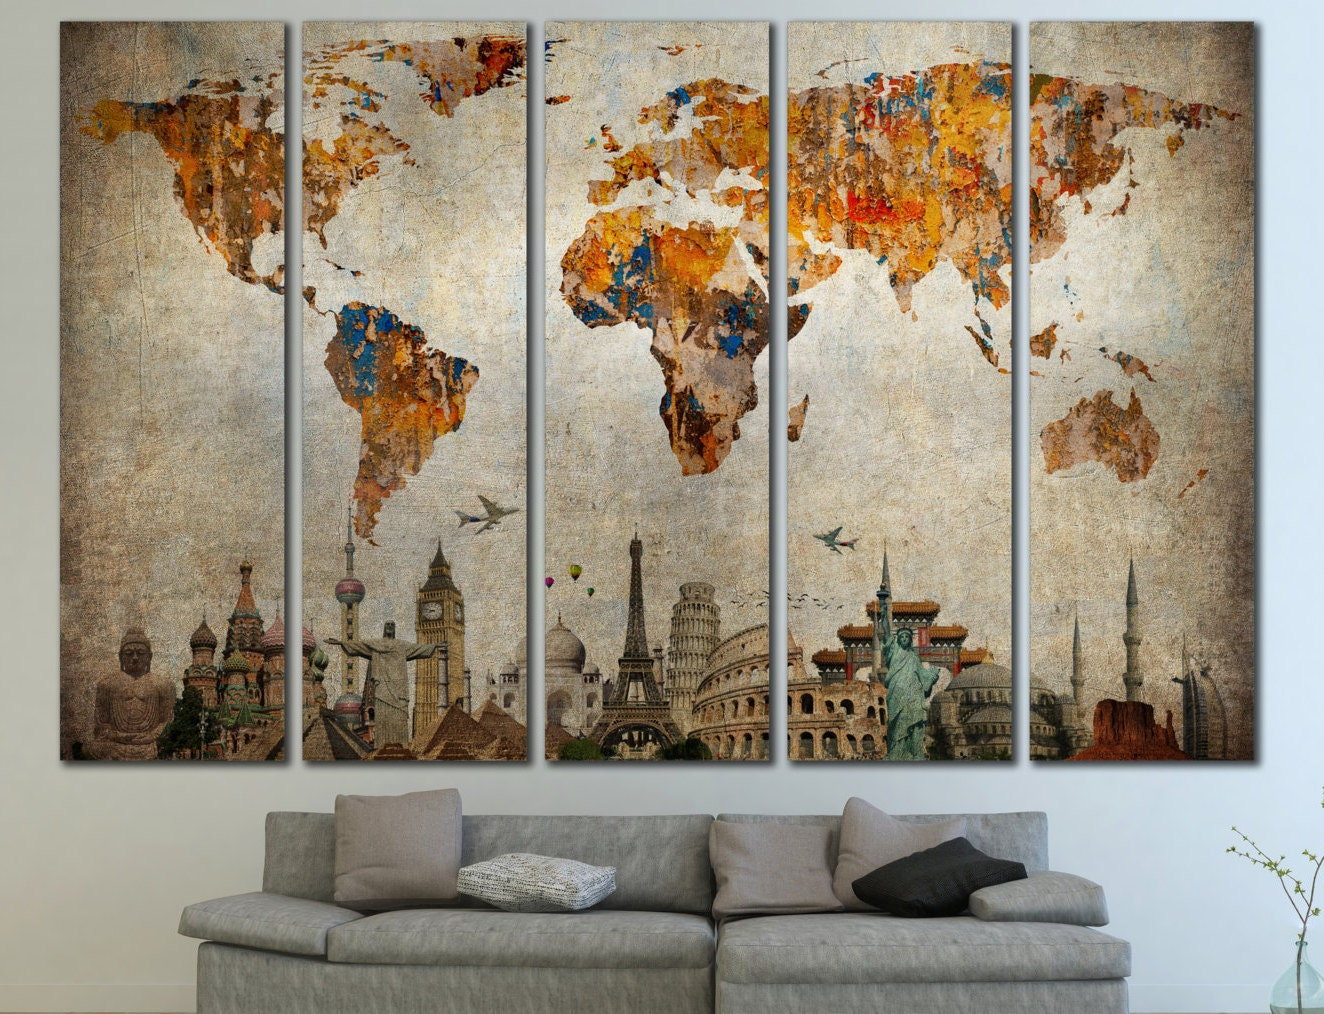 large world map panels poster decor canvas world map print. Black Bedroom Furniture Sets. Home Design Ideas